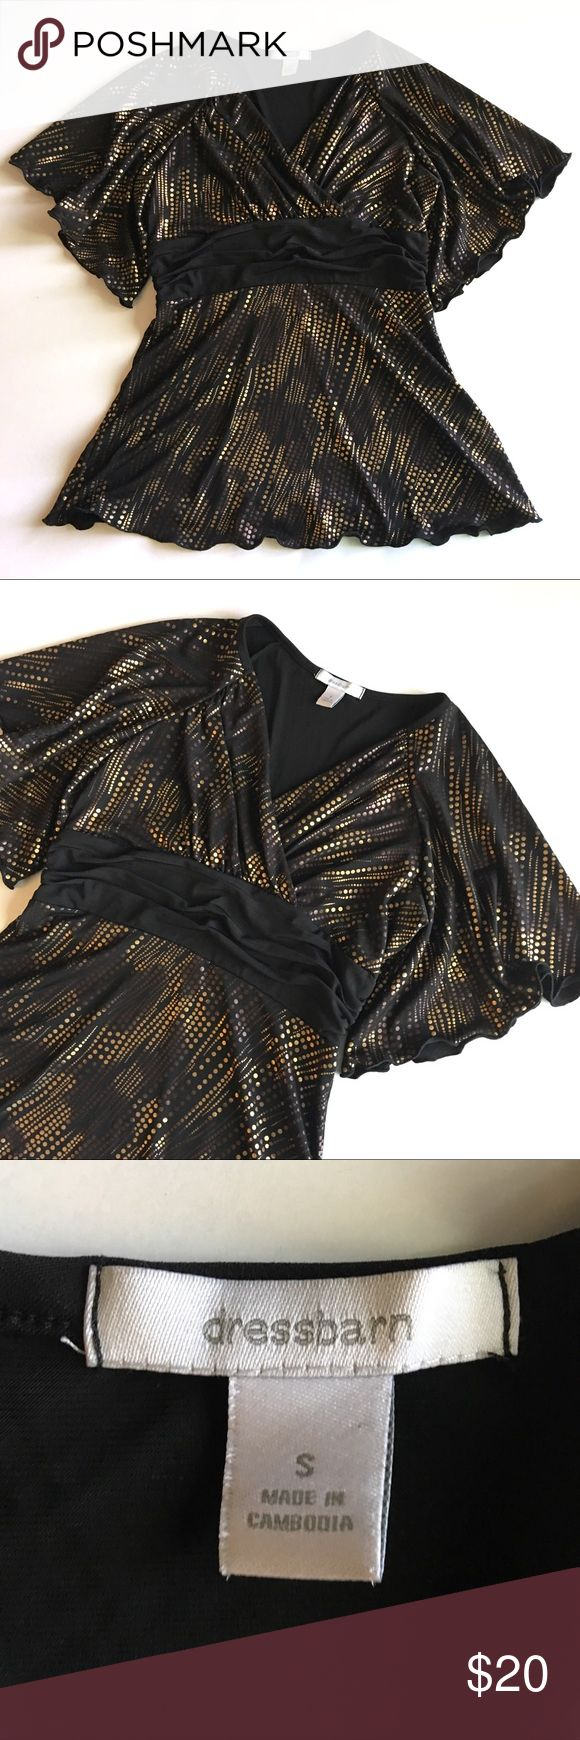 """❤ Dressbarn Batwing Blouse Ruched Waist Dressbarn faux wrap Blouse with Batwing sleeves // Sz S // 94% polyester, 6% spandex // lining 100% polyester // Rouched waist // Metallic Polka Dot print // black blouse with bronze / gold / brown Polka dots // non-smoking home // 19"""" across armpits // 13"""" sleeves // 15"""" waist // 27"""" length // 6.23.20.65 // offers welcome Dress Barn Tops Blouses"""